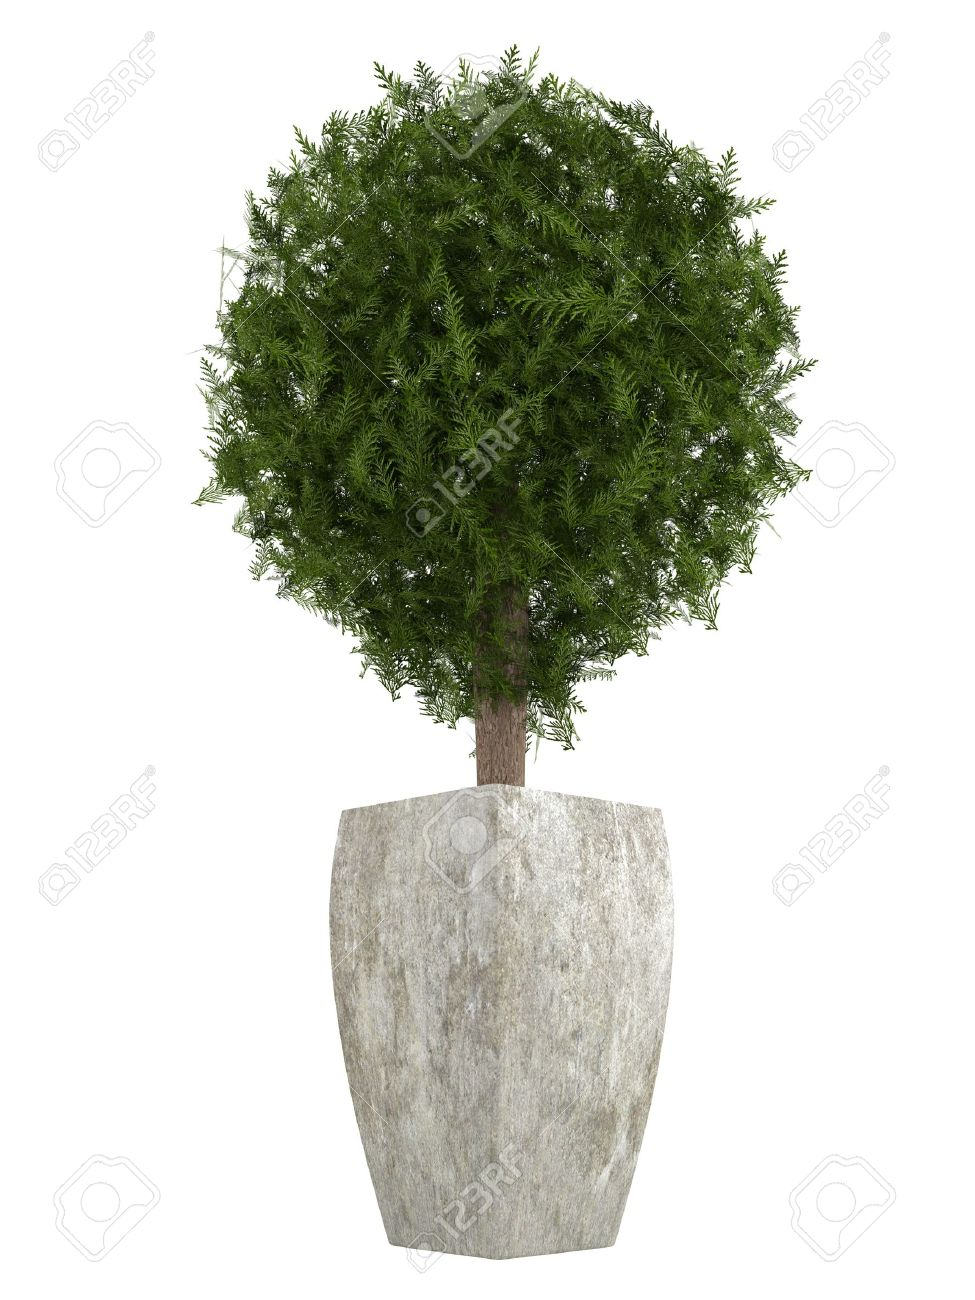 Decorative Indoor Trees Evergreen Cypress Topiary Tree In A Container For Use Indoors